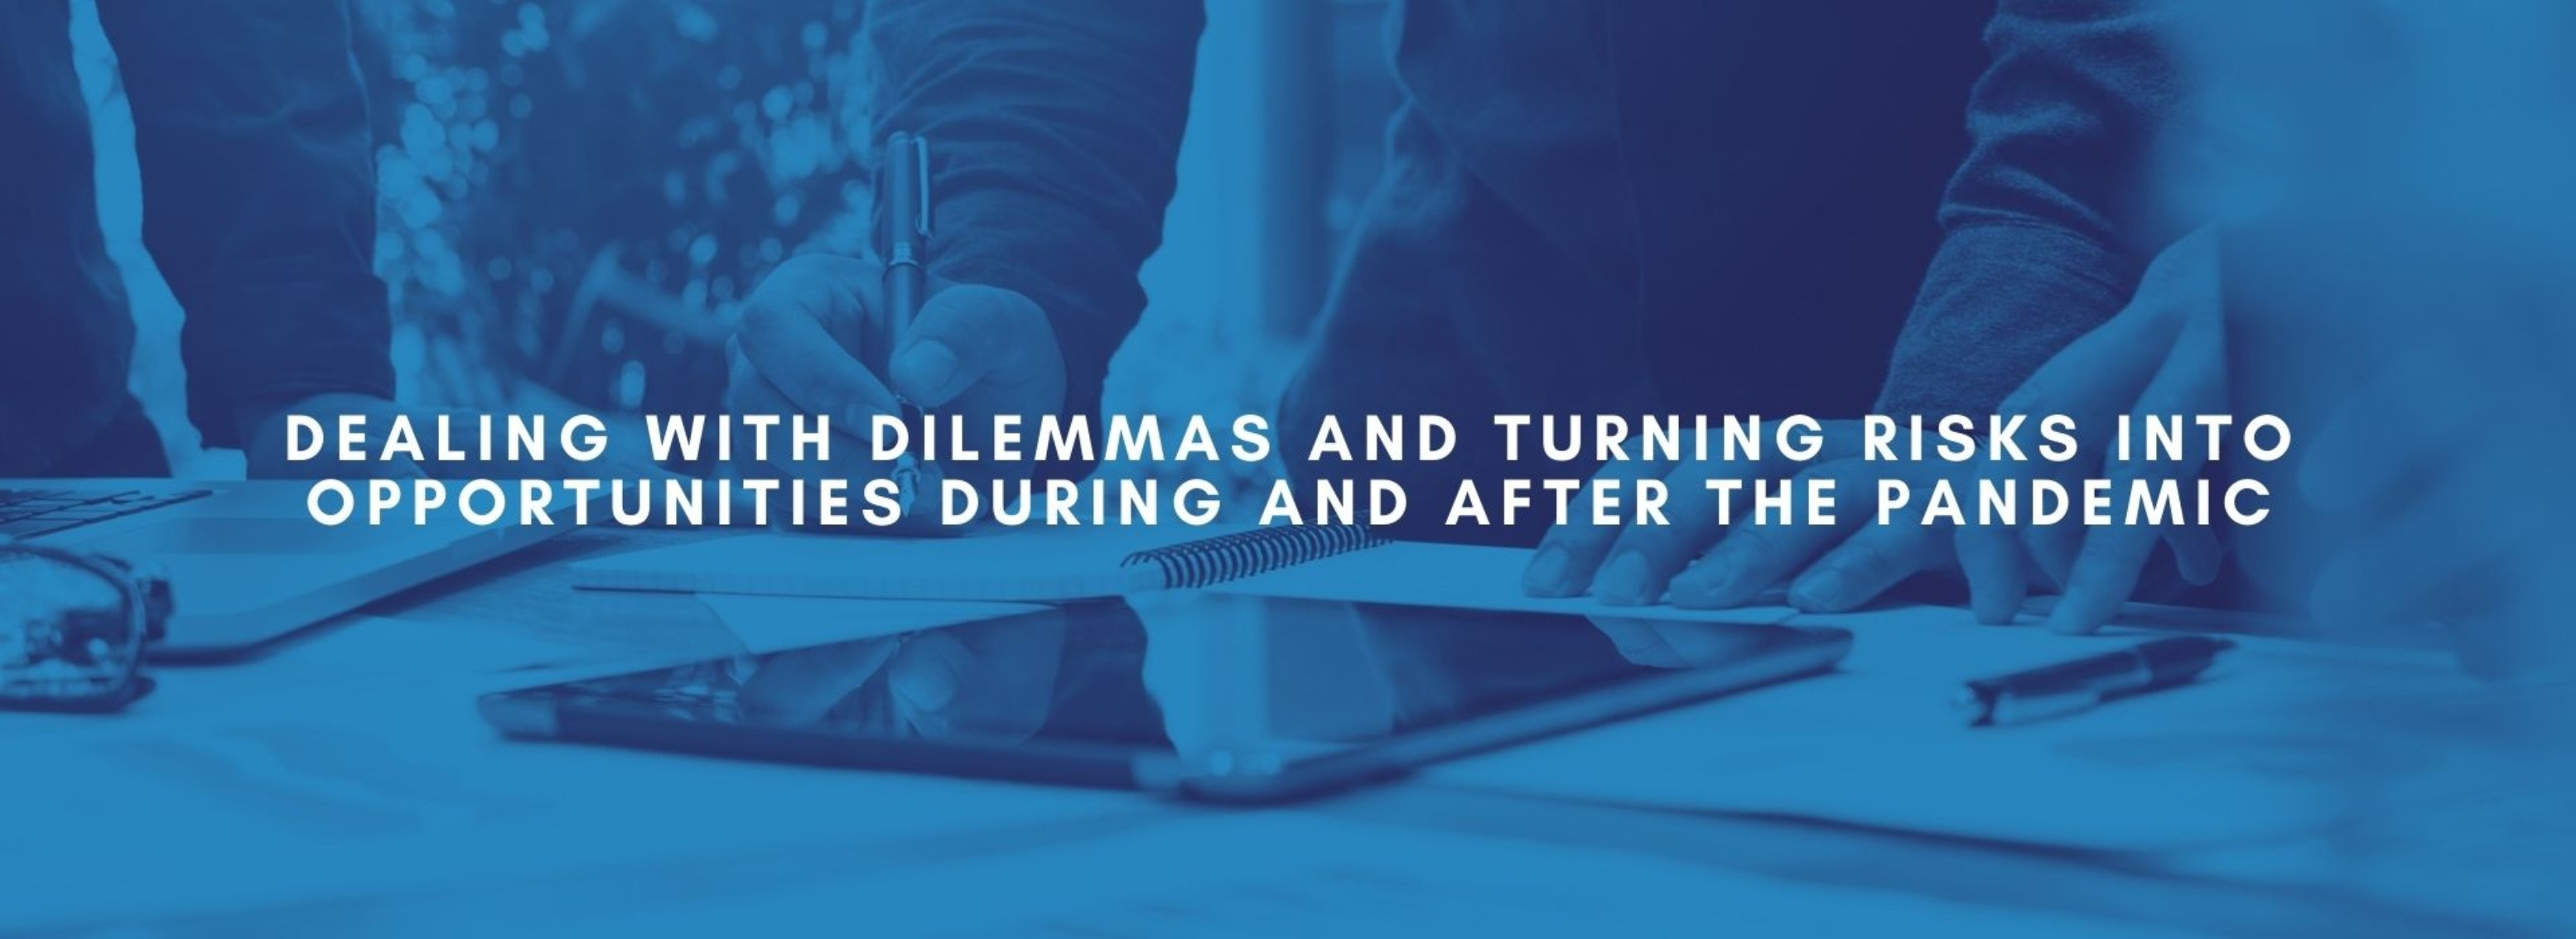 BP | Dealing with Dilemmas and Turning Risks into Opportunities | February 23rd, 2021